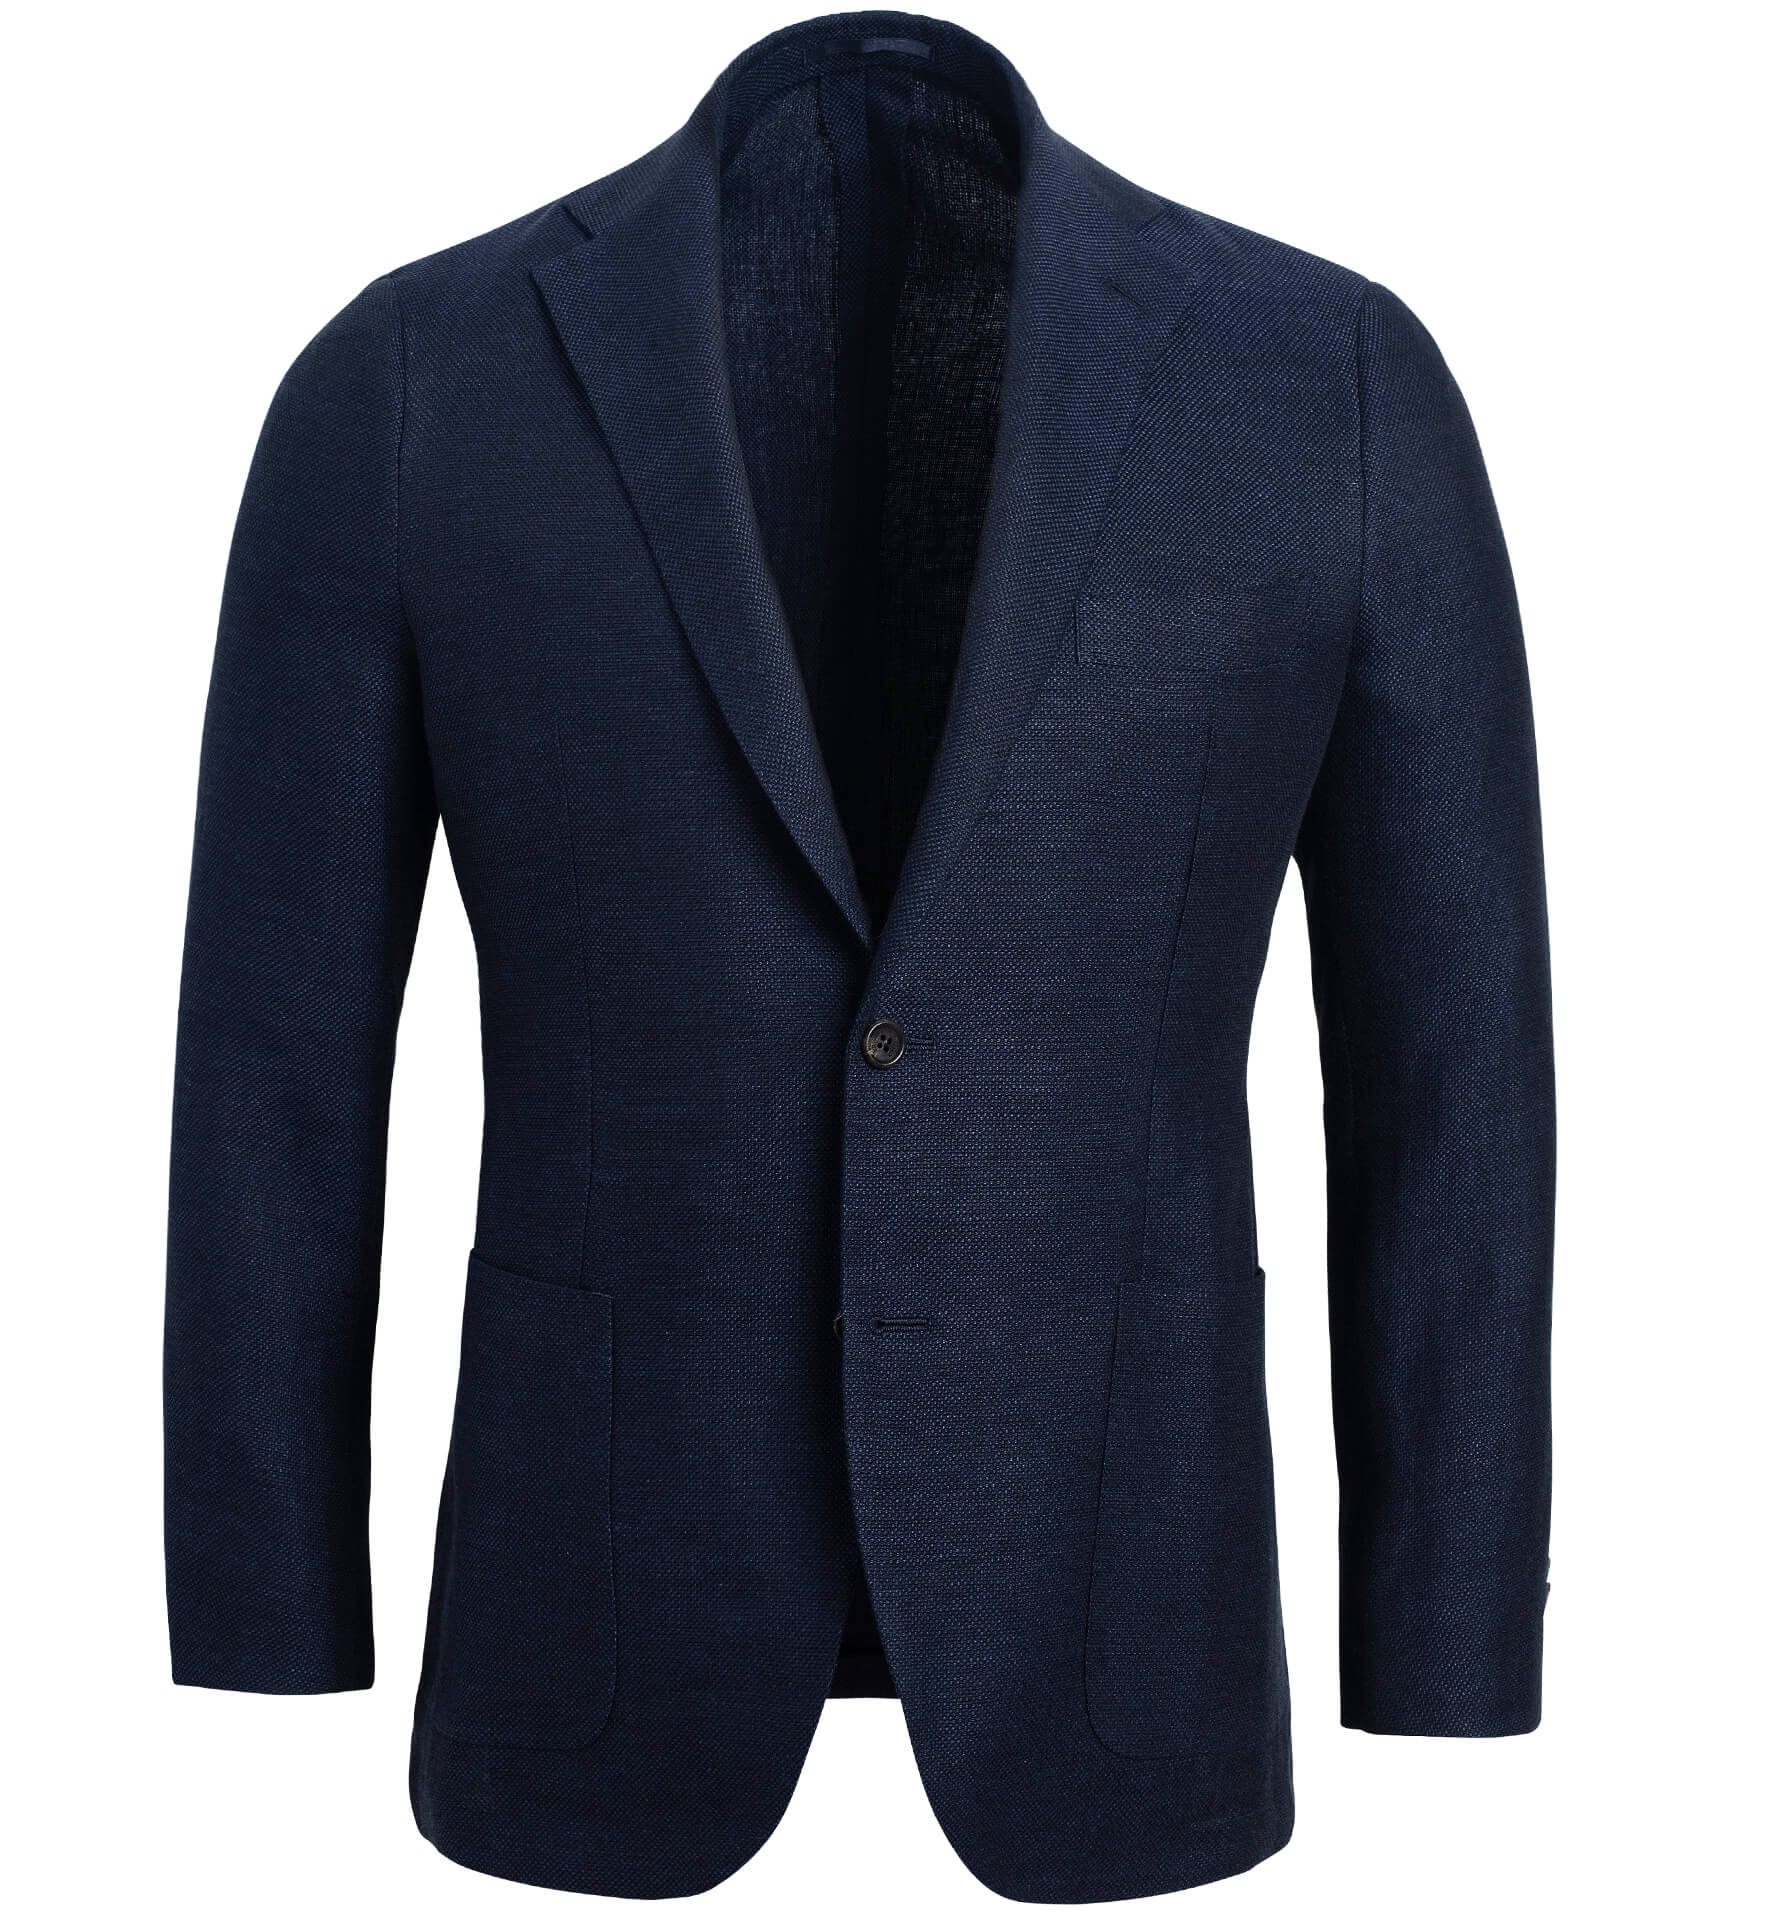 Zoom Image of Bedford Navy Linen and Wool Hopsack Jacket